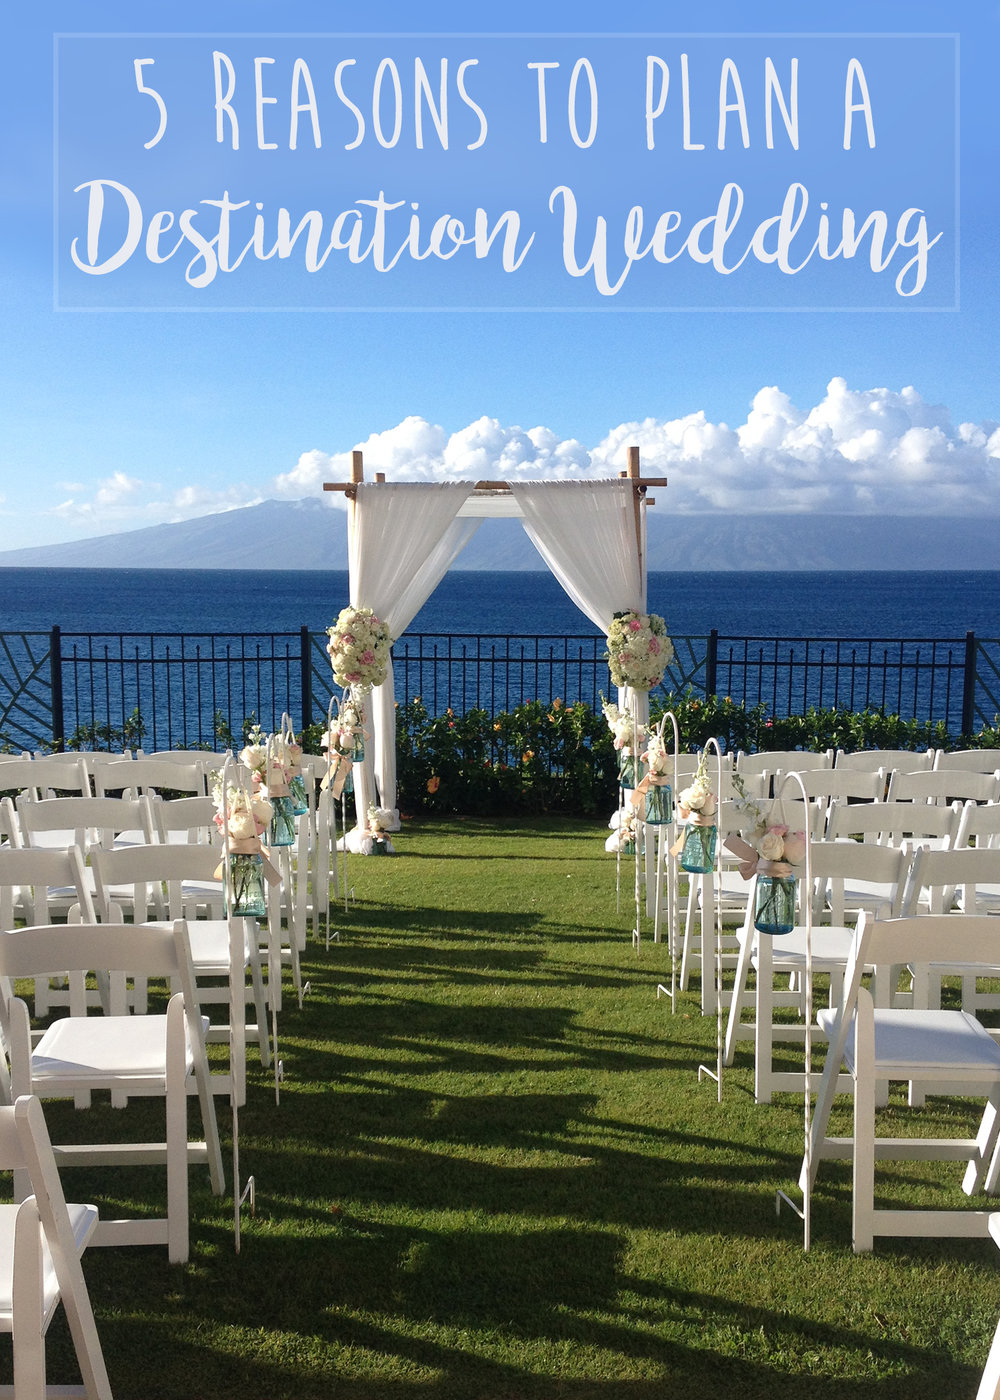 5 Reasons to plan a Destination Wedding